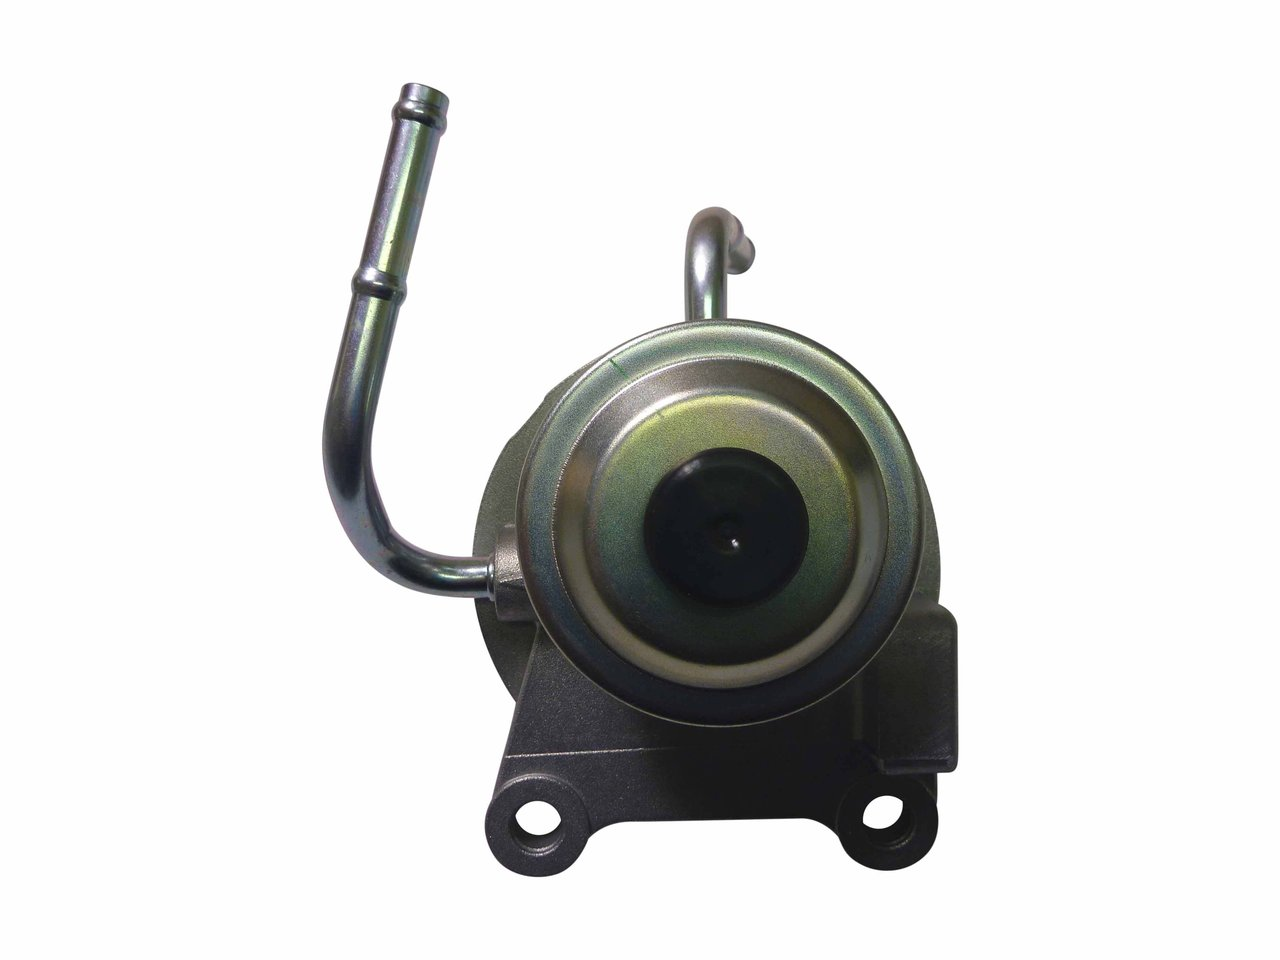 1kz Fuel Pump All New Car Release And Reviews Mercedes Benz Filter On M2 Diesel Cap With Primer Suitable For Hilux